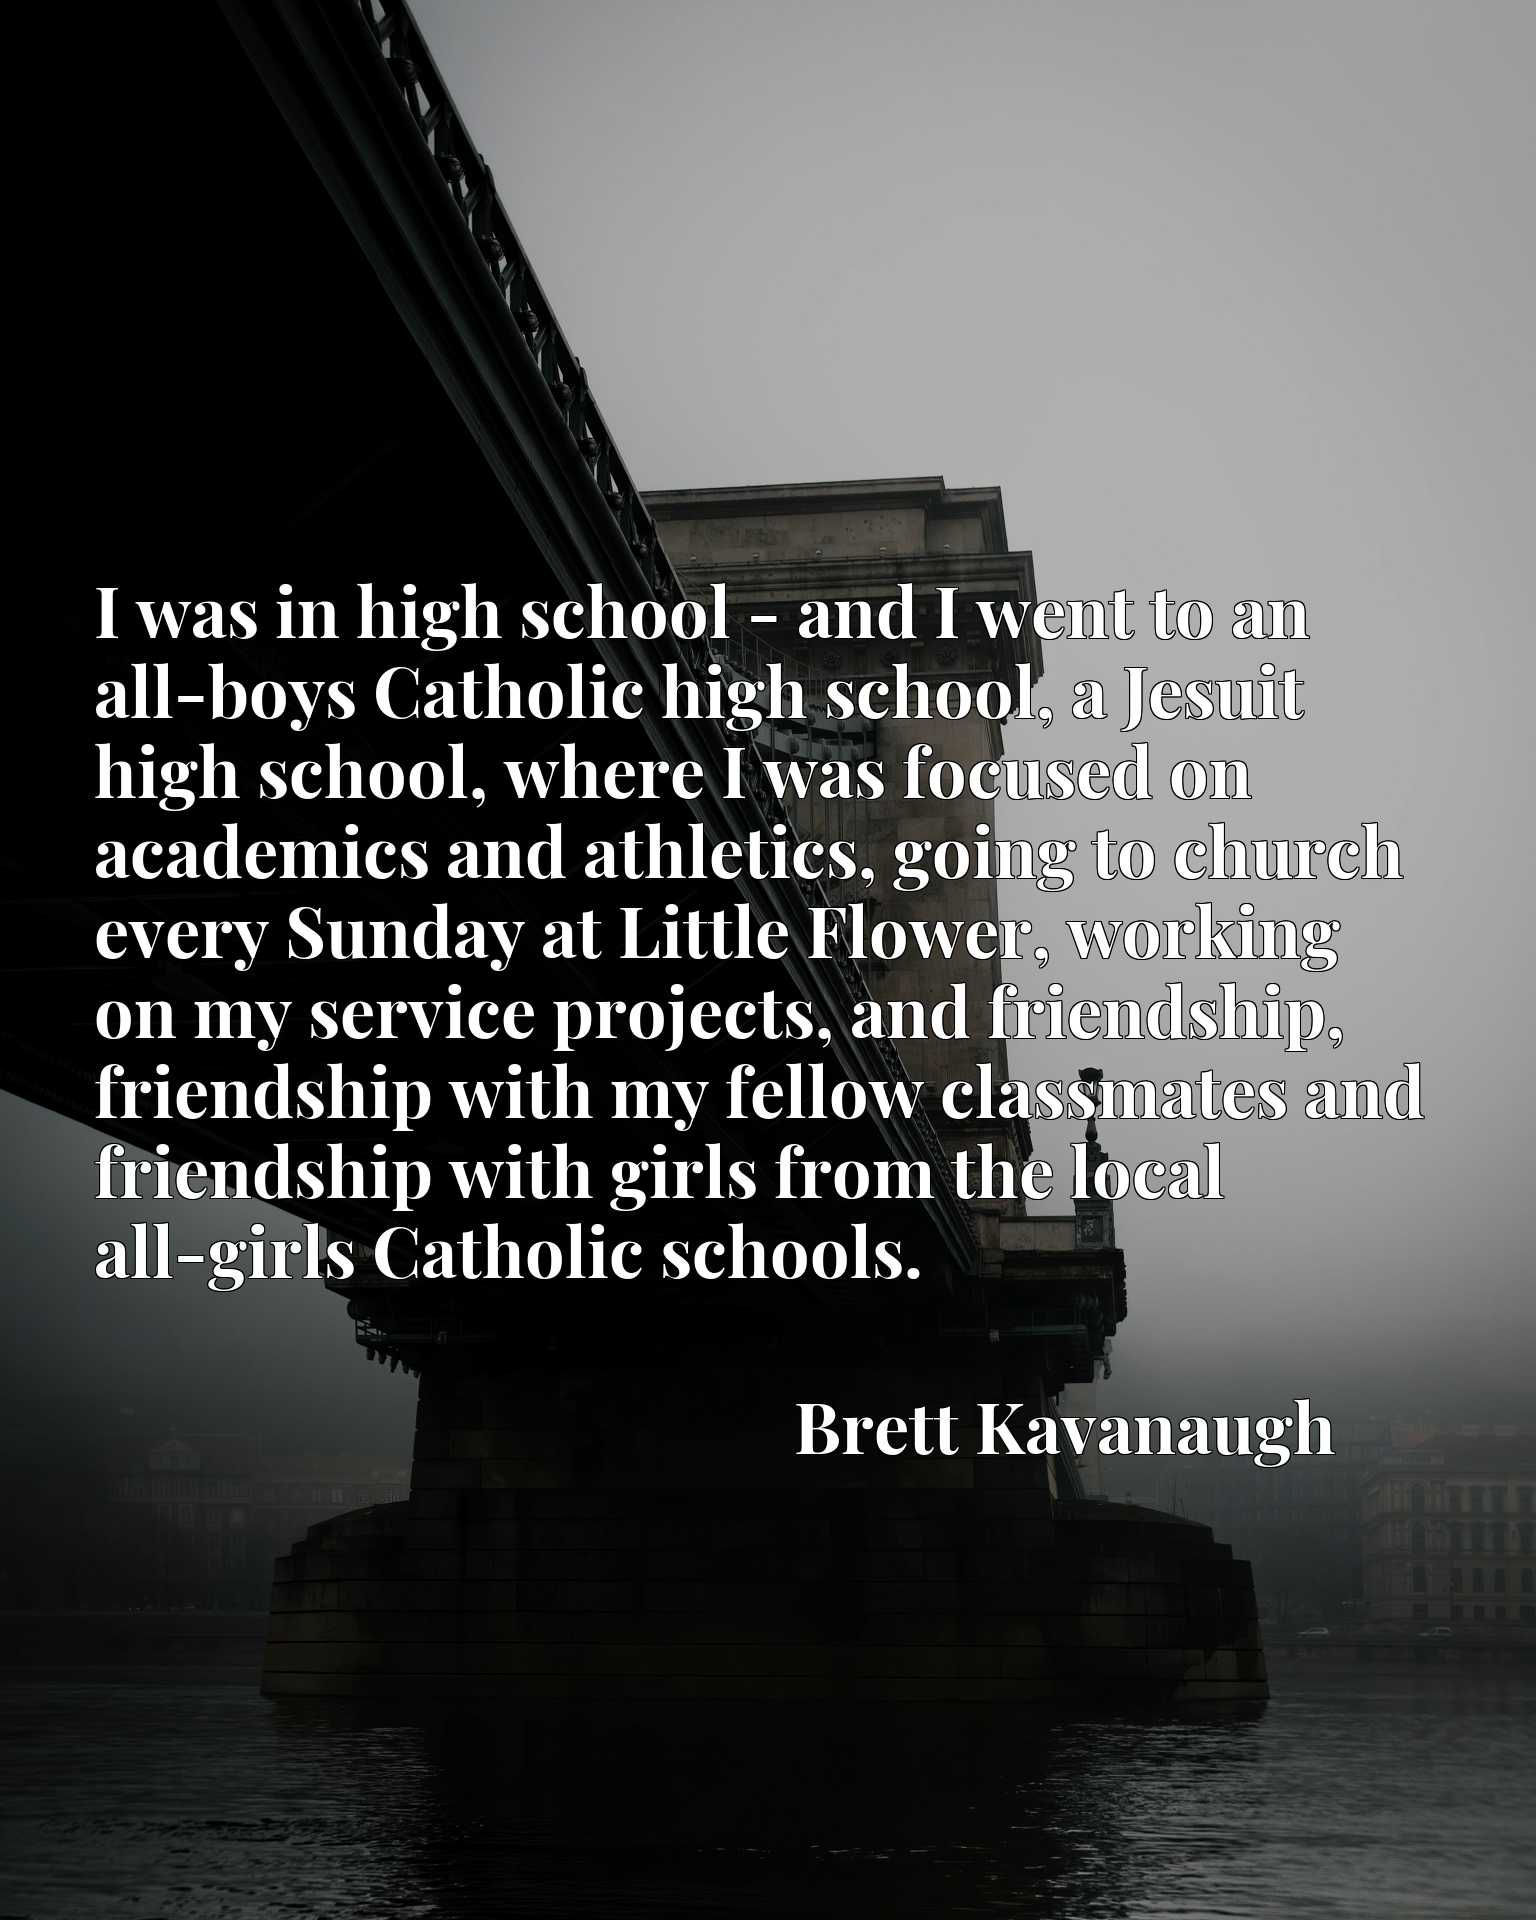 I was in high school - and I went to an all-boys Catholic high school, a Jesuit high school, where I was focused on academics and athletics, going to church every Sunday at Little Flower, working on my service projects, and friendship, friendship with my fellow classmates and friendship with girls from the local all-girls Catholic schools.